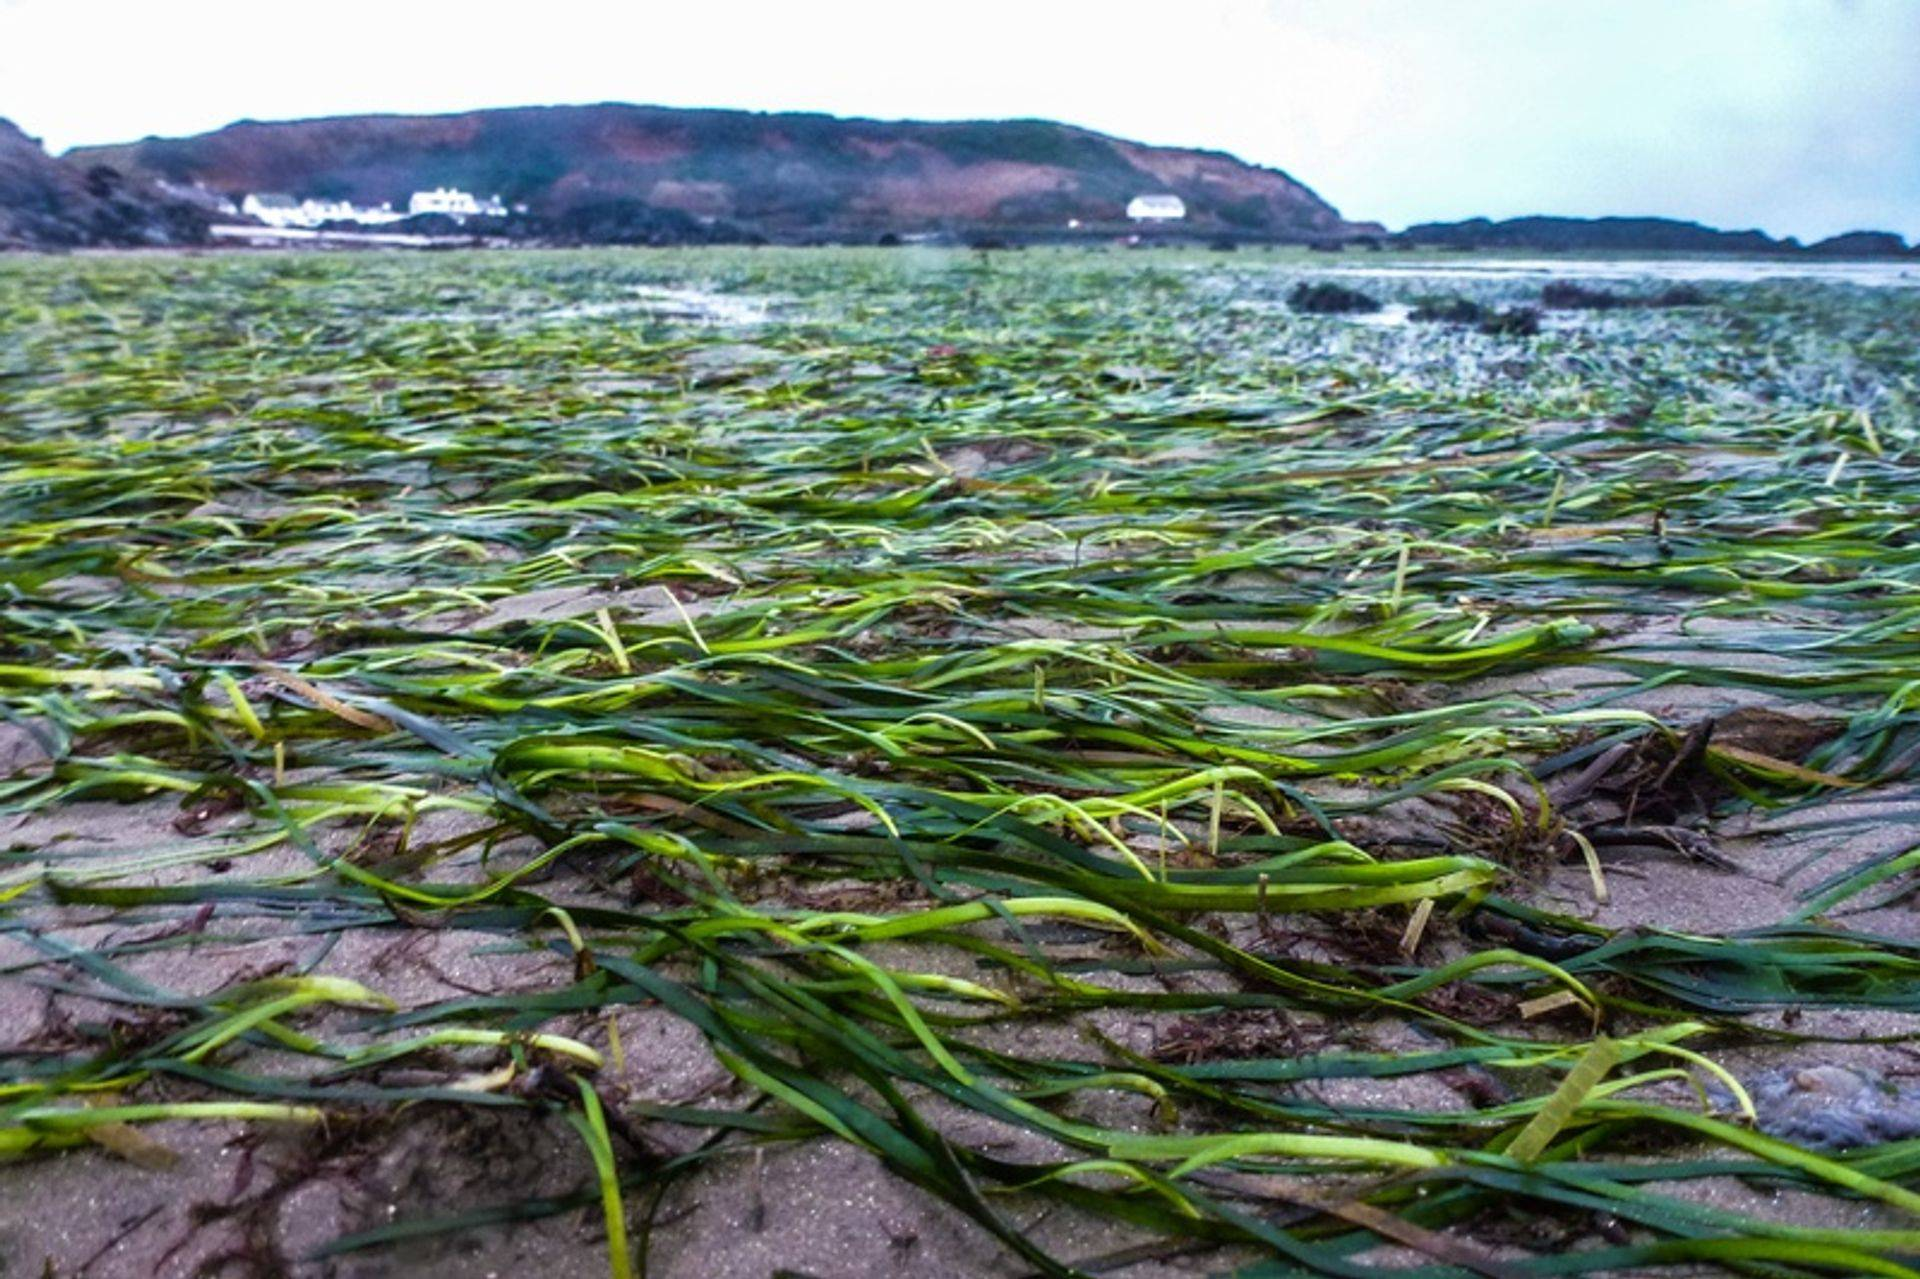 A Zostera marina (eelgrass) seagrass meadow in Porthdinllaen, Wales.